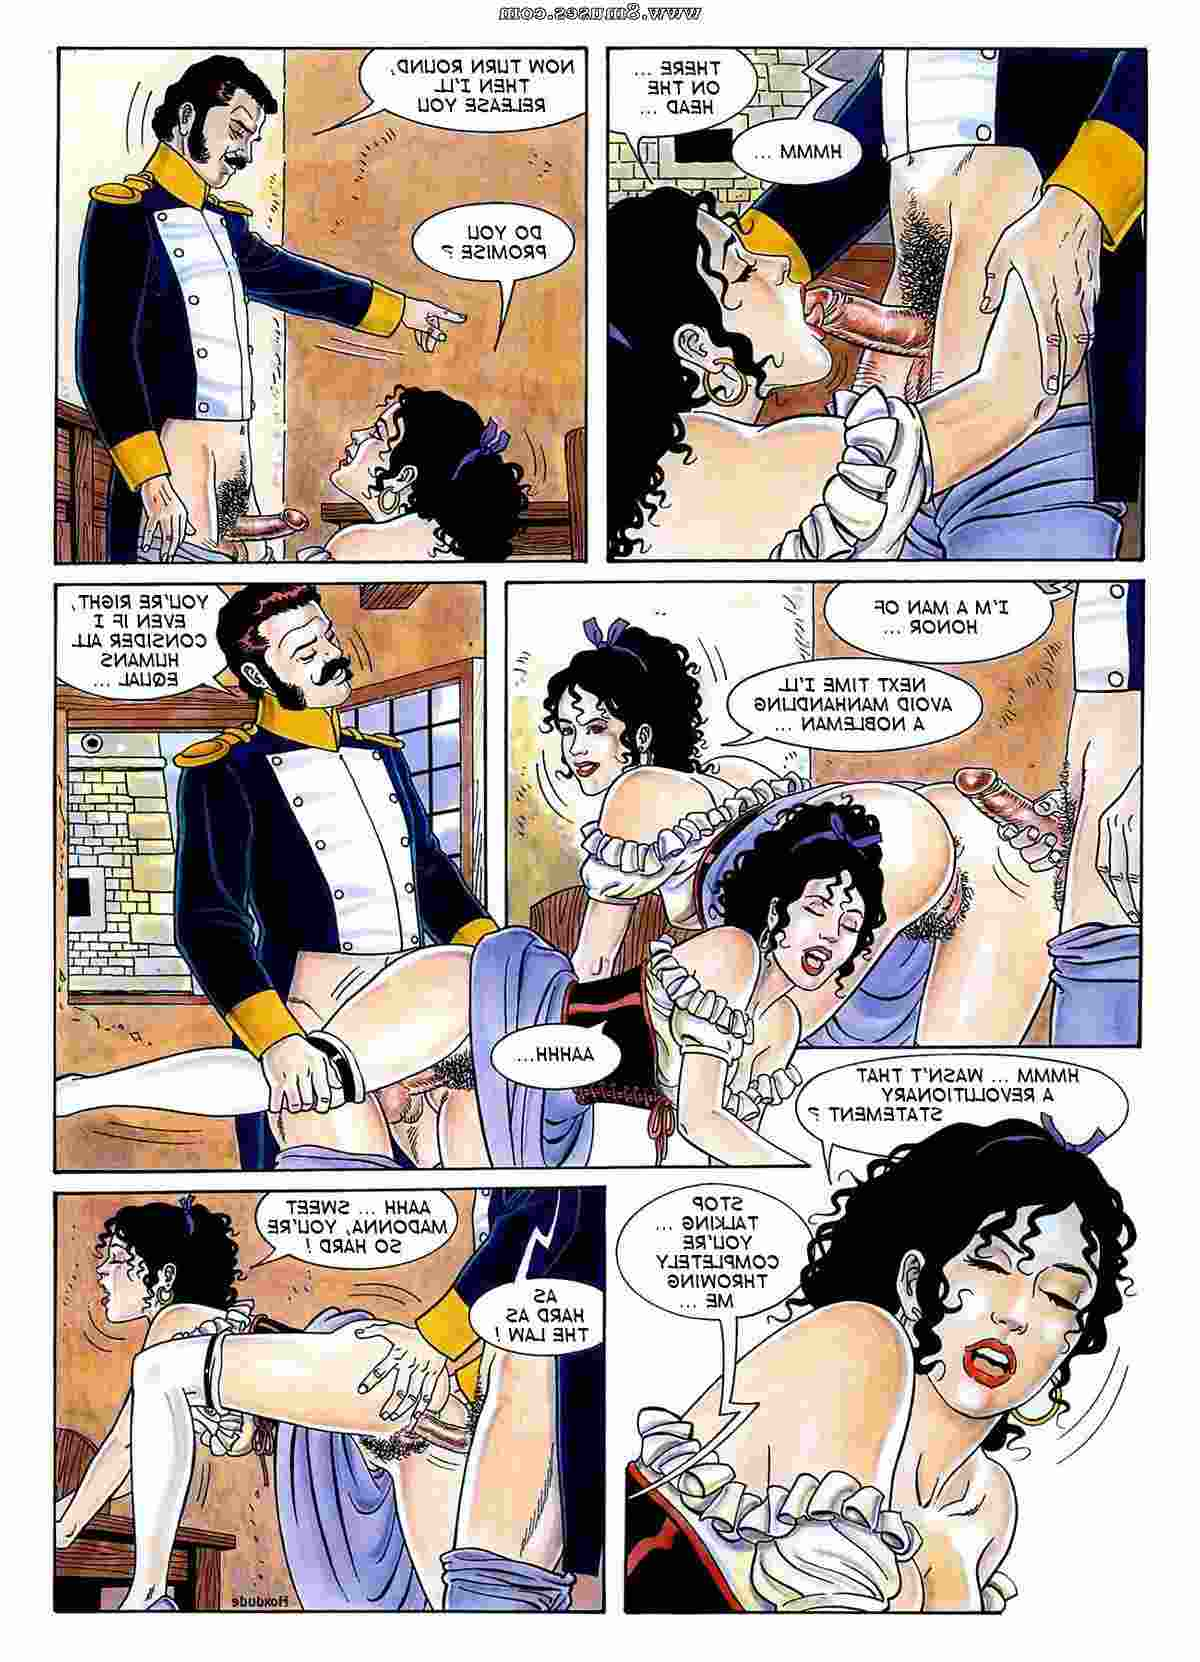 Stramaglia-Morale-Comics/Lisa-Fatal-Beauty Lisa_Fatal_Beauty__8muses_-_Sex_and_Porn_Comics_39.jpg